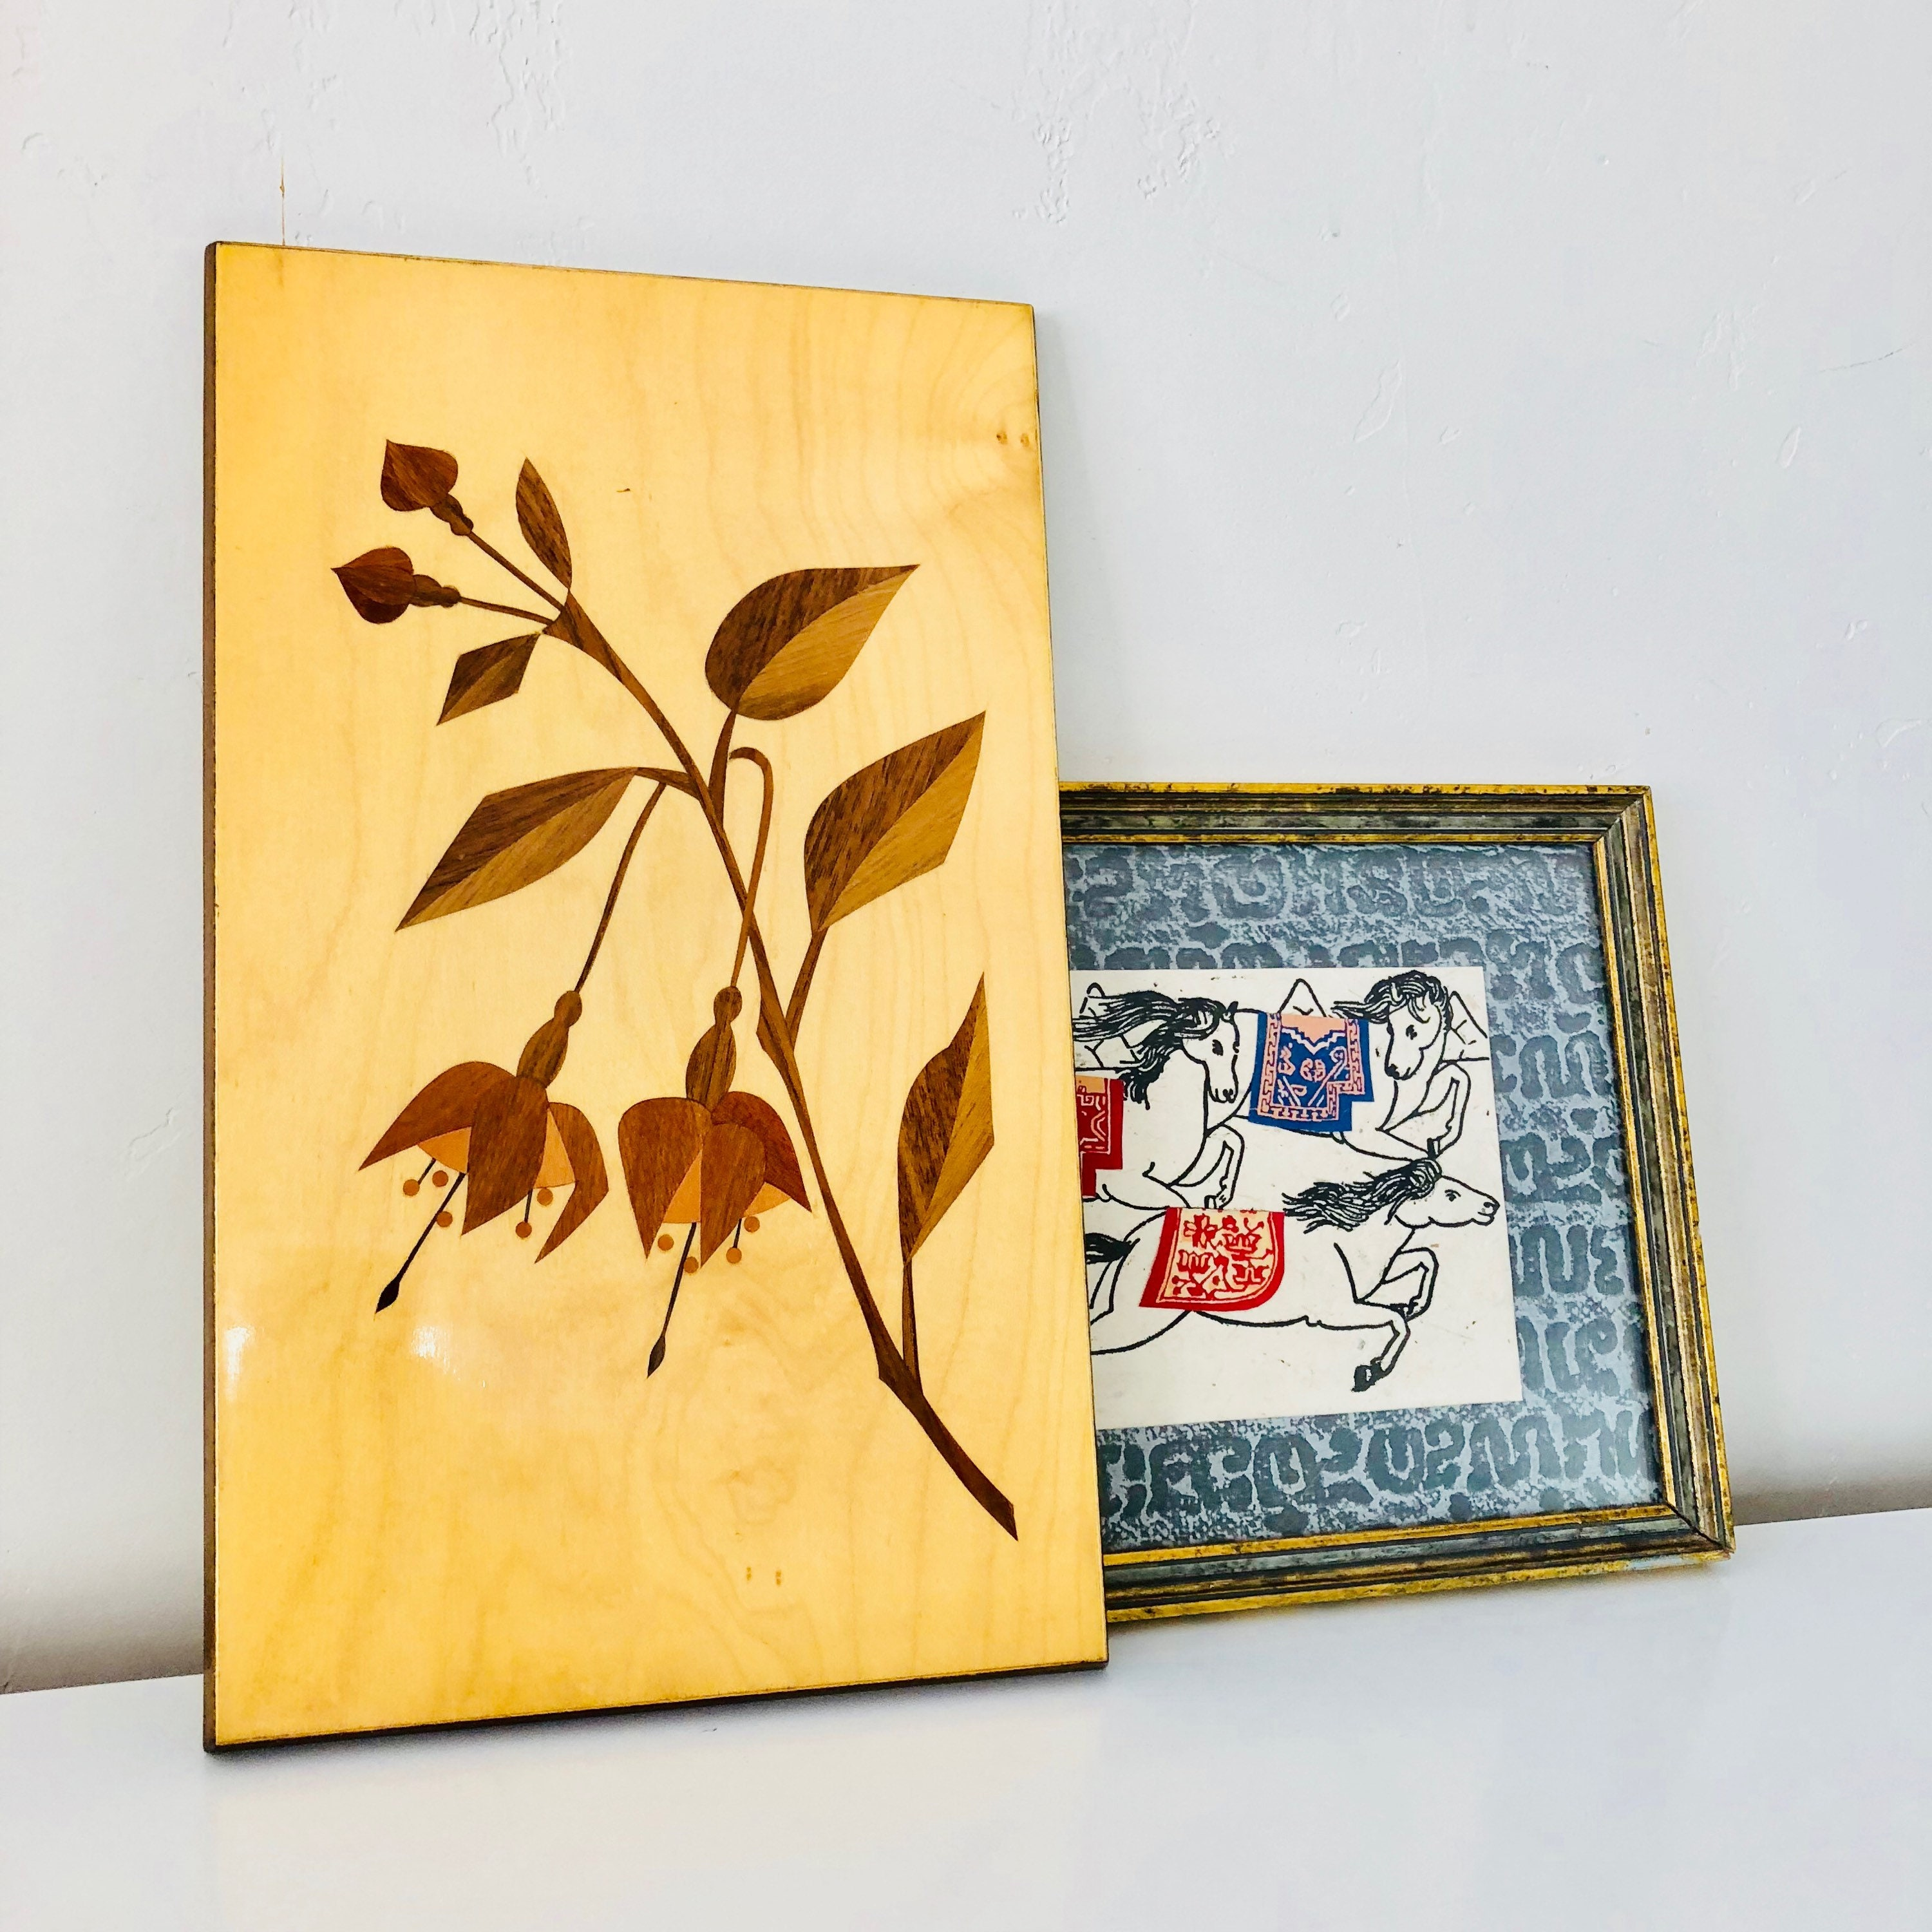 Vintage Wooden Wall Art Intarsia Inlaid Marquetry German Wood Wall ...